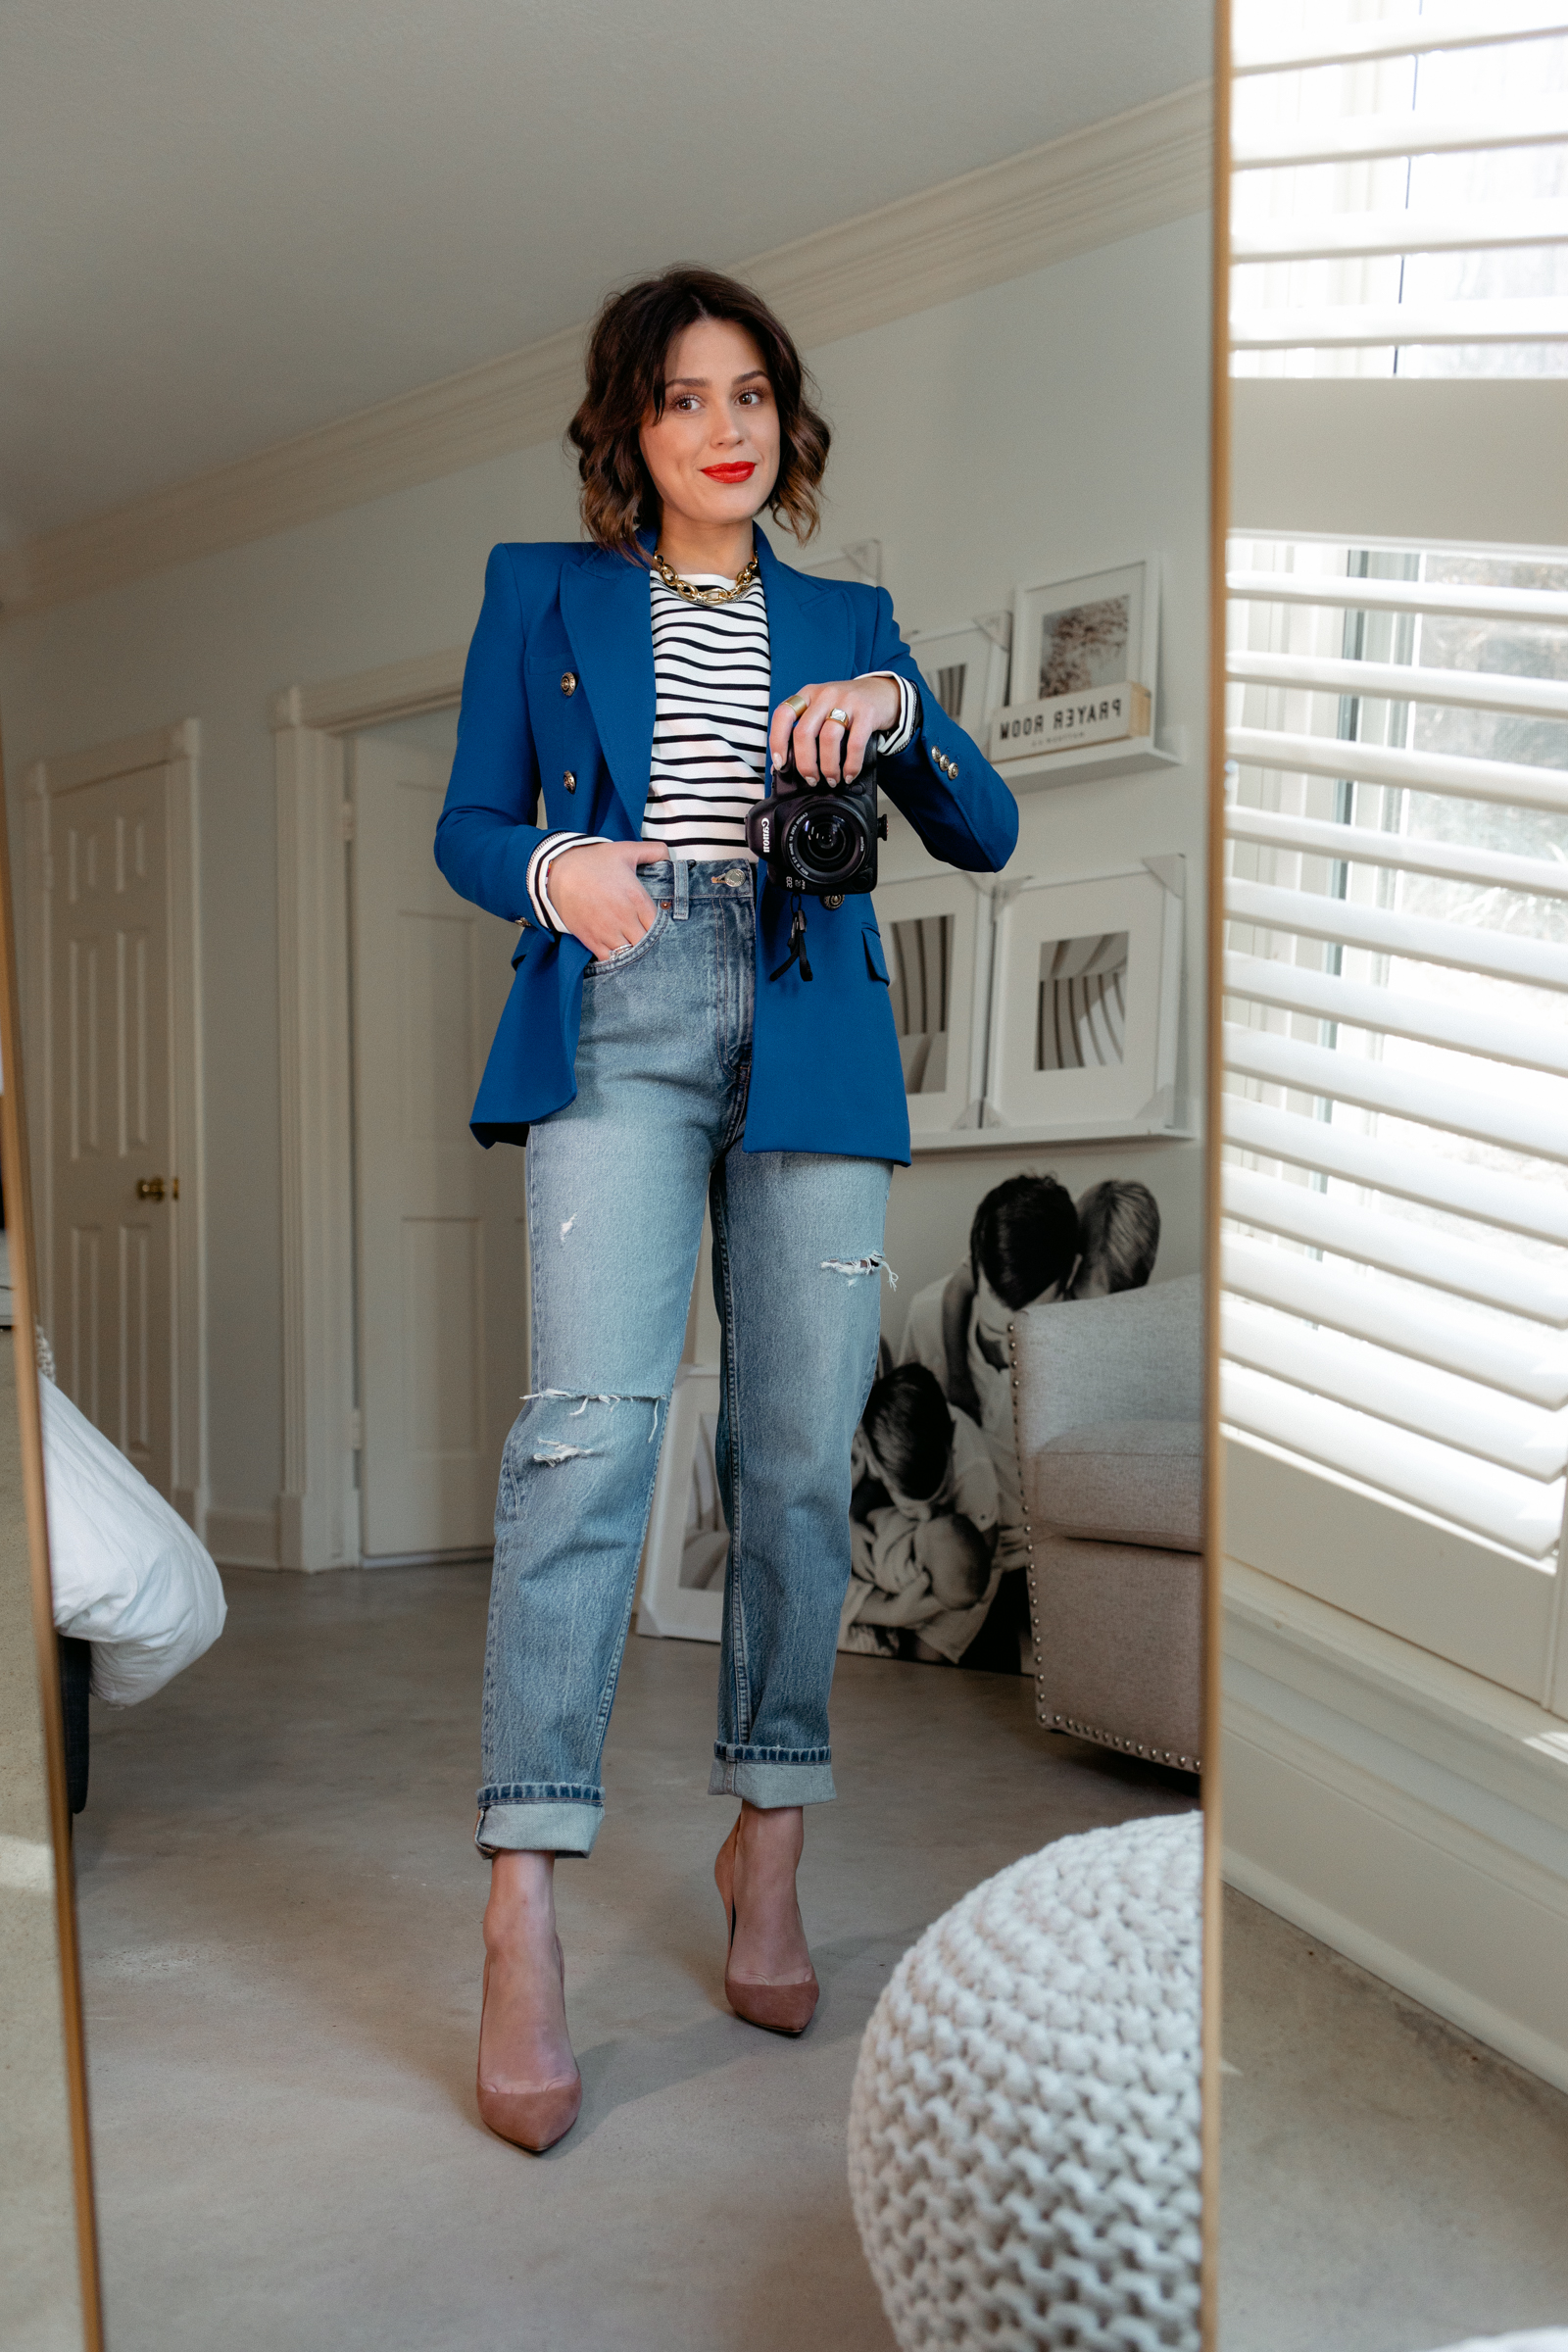 Elly brown wears a navy blue blazer with distressed mom jeans and heels